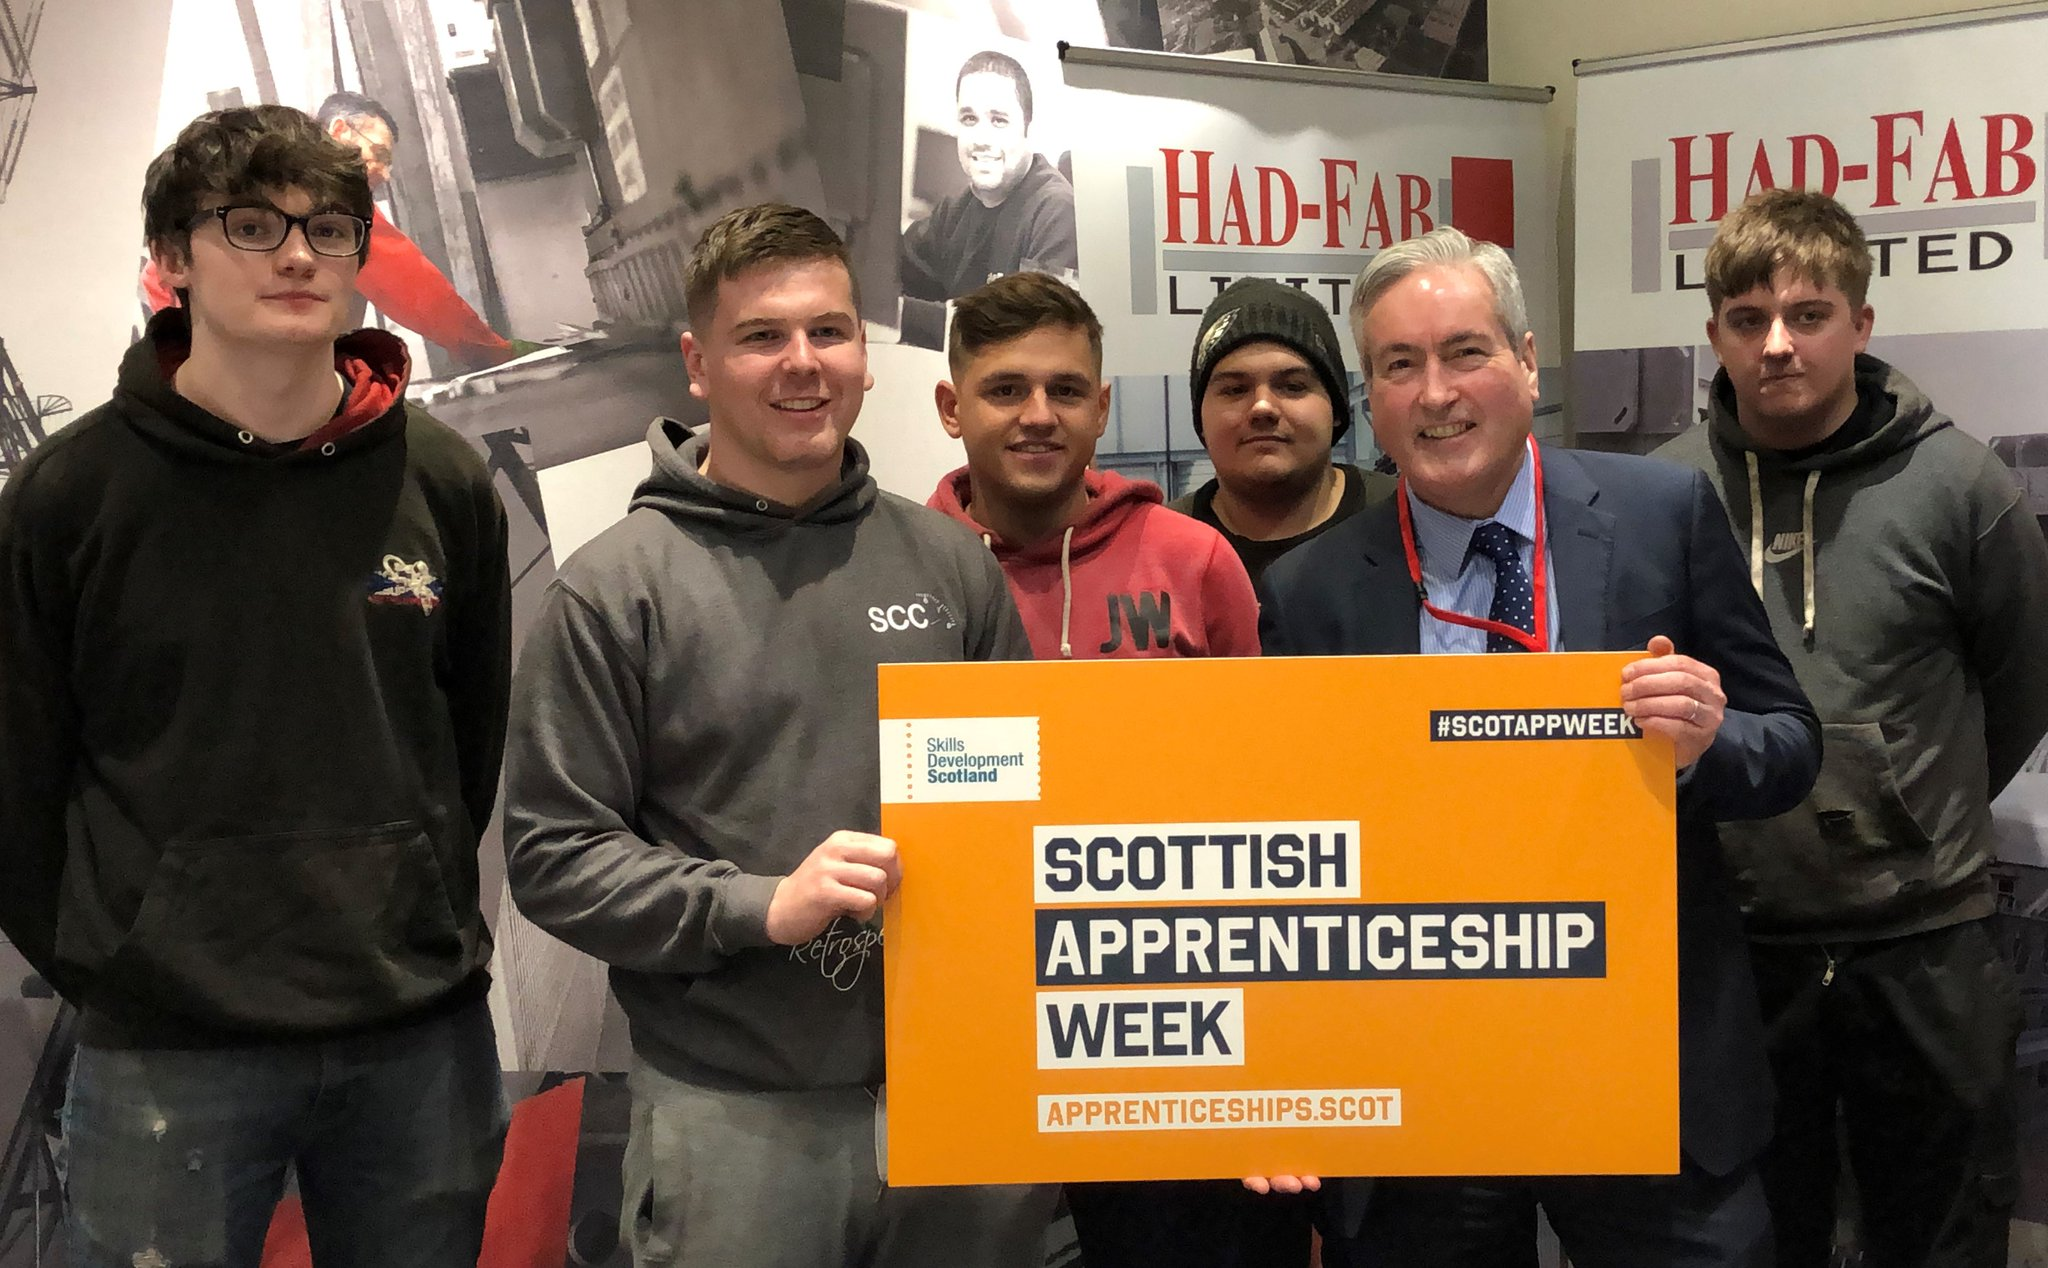 Scottish Apprenticeship Week at Had-Fab